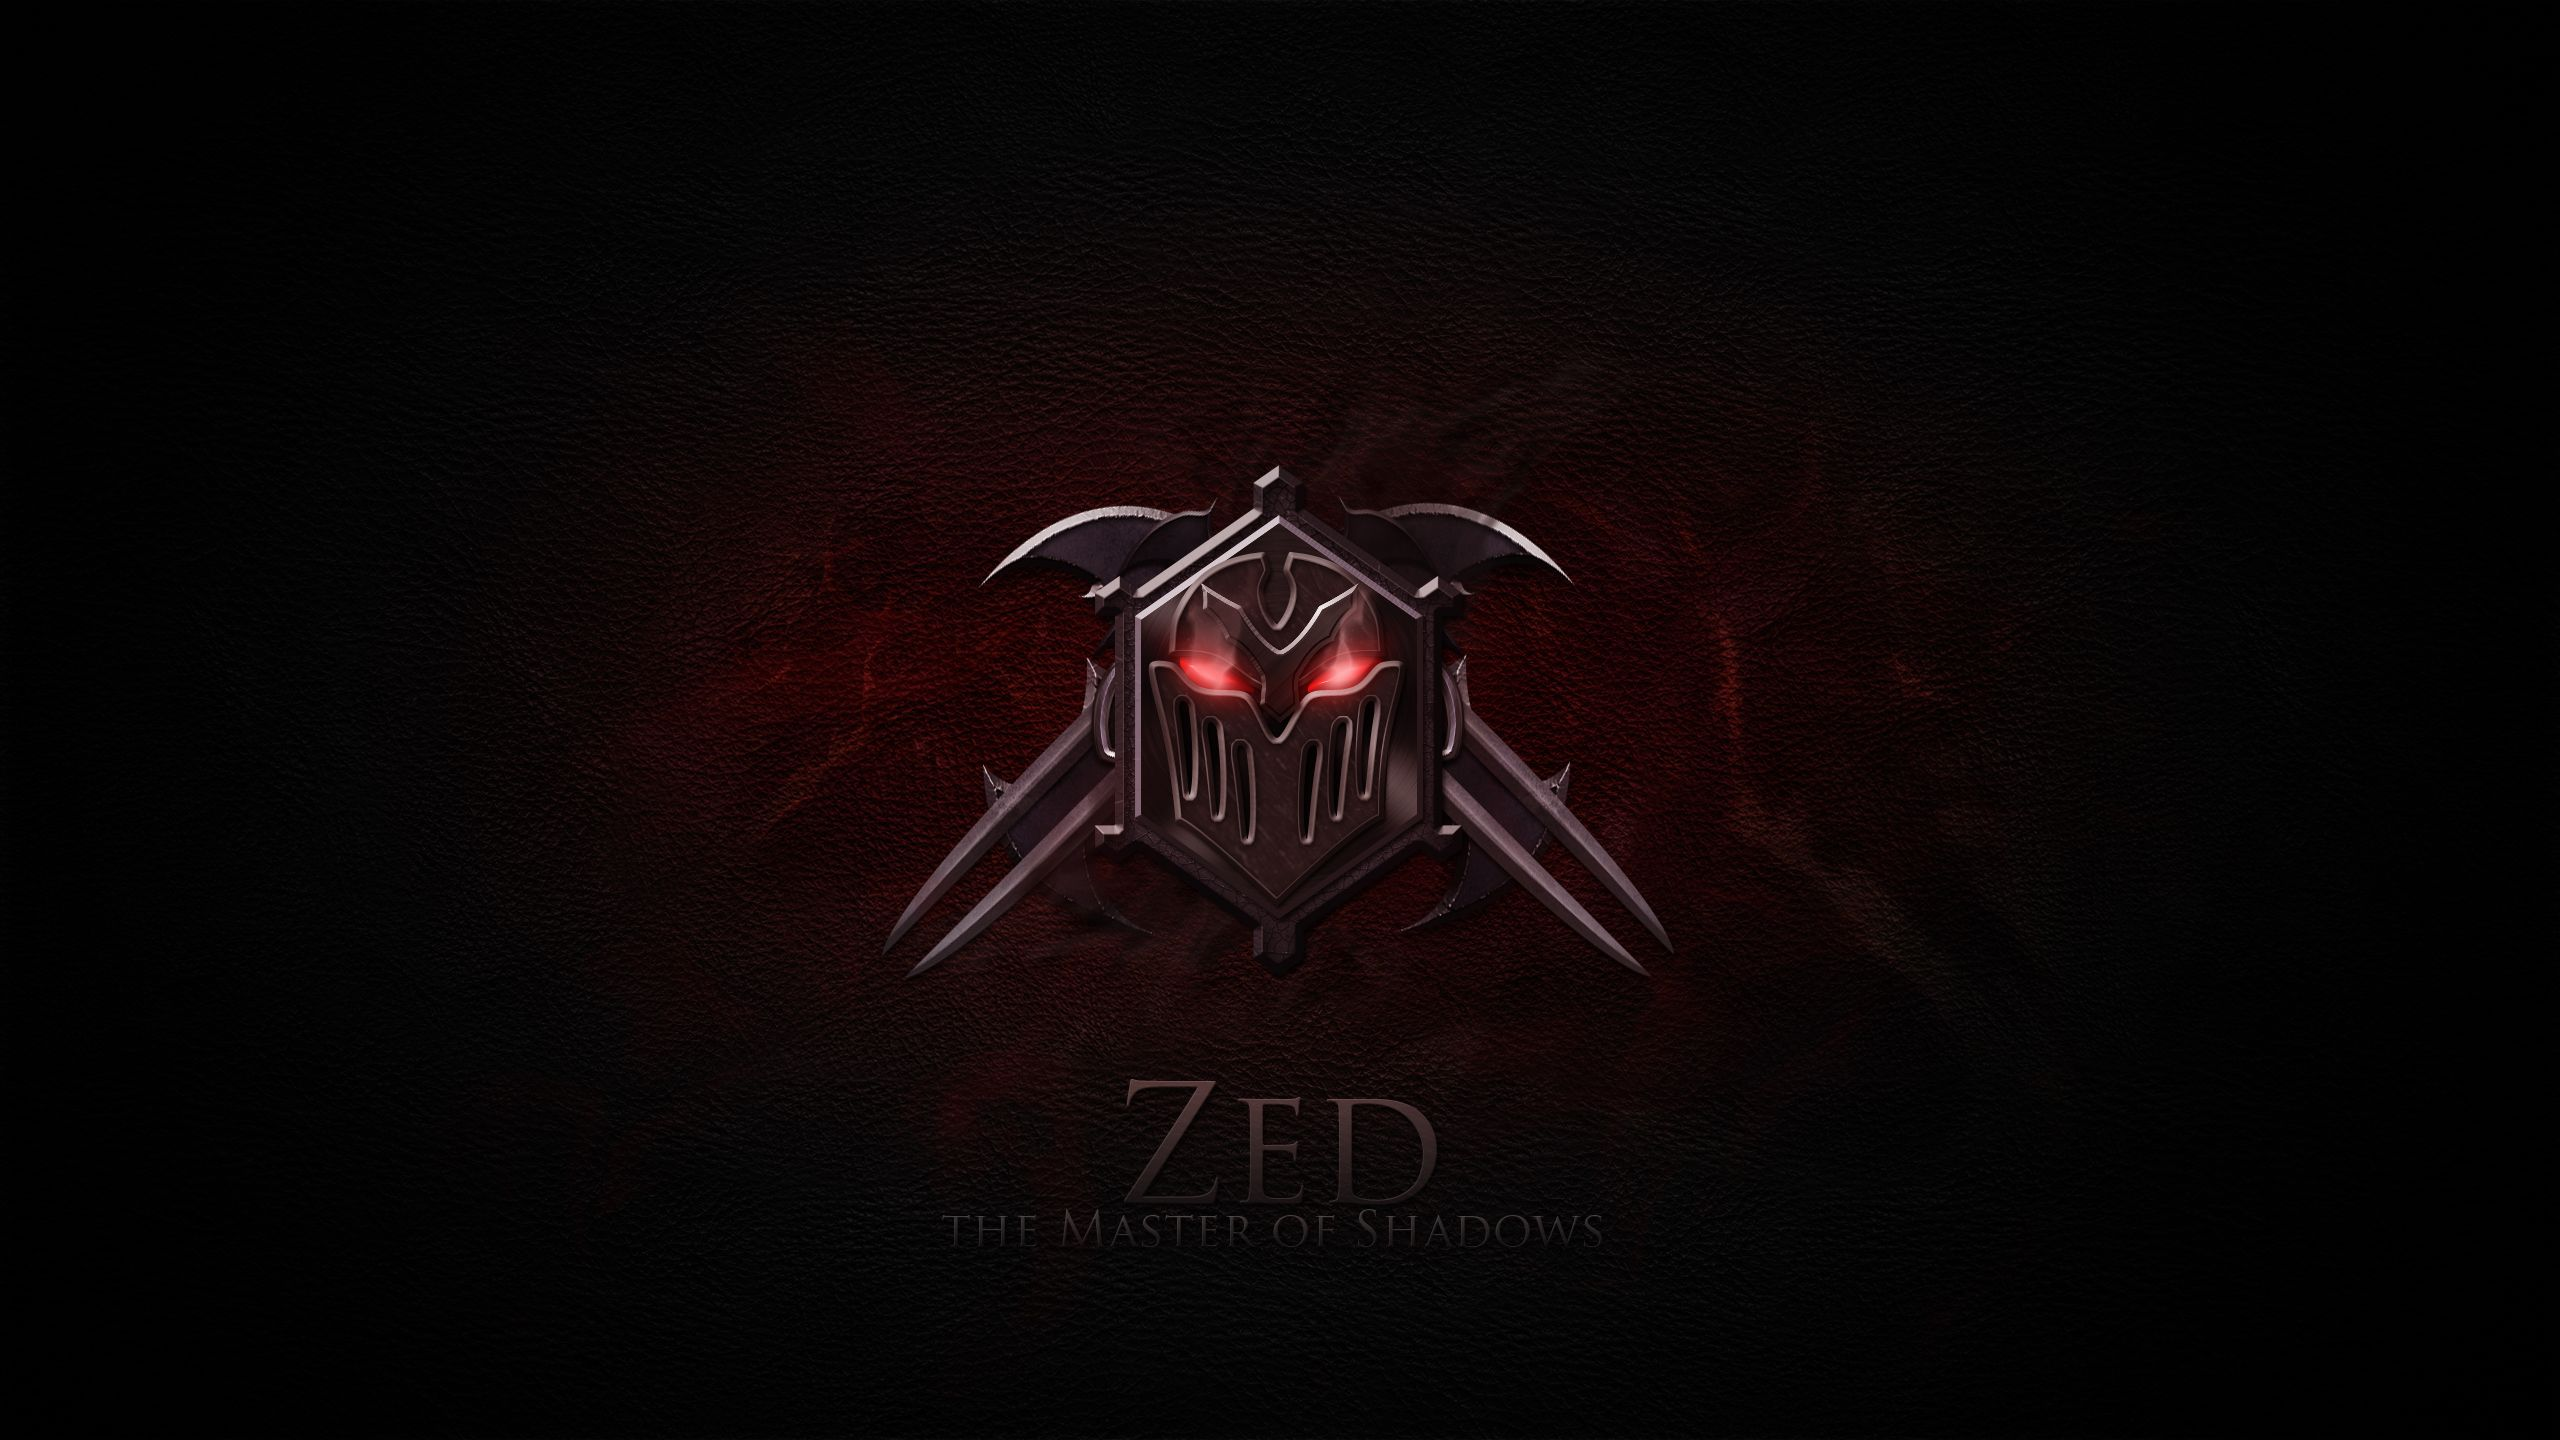 Zed Multimedia Artist League Of Legends League Of Legends Video